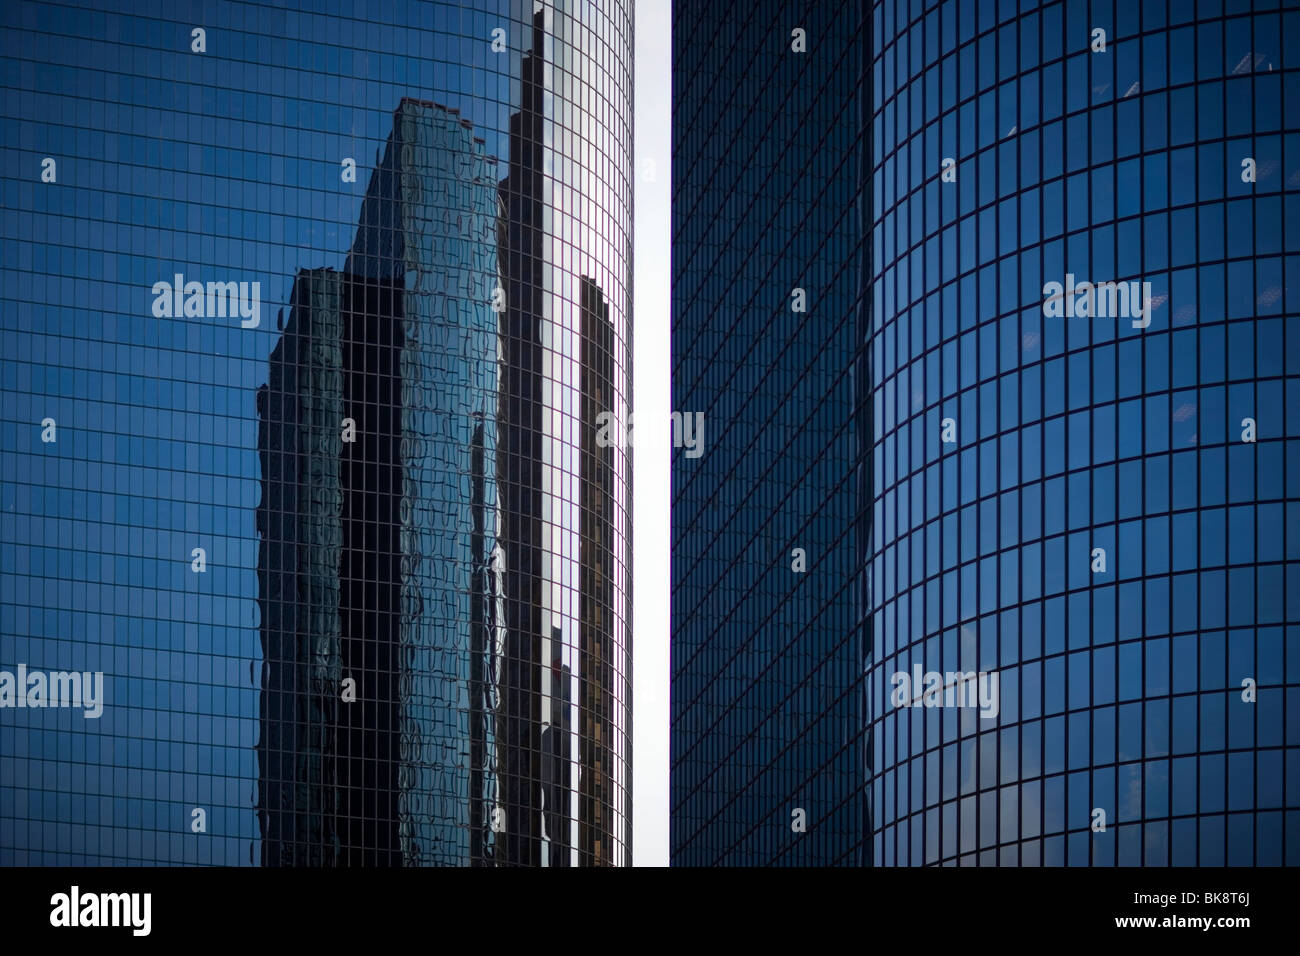 USA, California, Los Angeles, windows reflecting office buildings in downtown - Stock Image